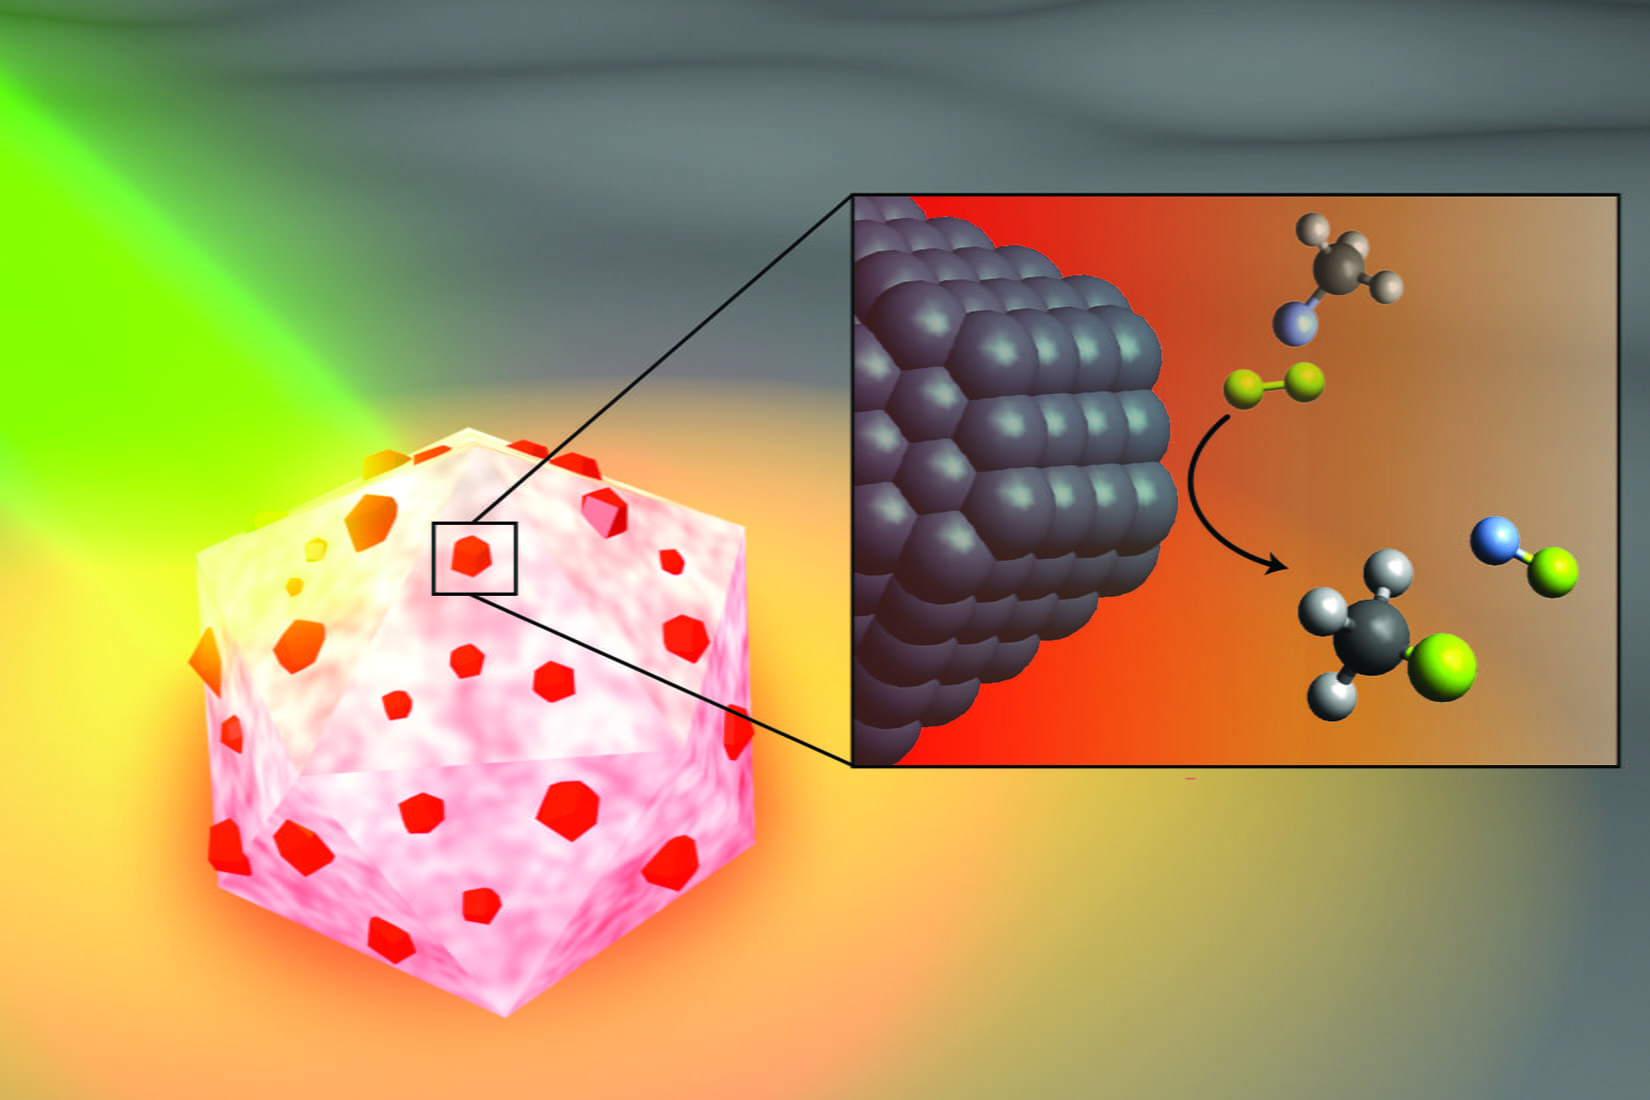 An artist's illustration of the light-activated antenna-reactor catalyst Rice University engineers designed to break carbon-fluorine bonds in fluorocarbons. The aluminum portion of the particle (white and pink) captures energy from light (green), activating islands of palladium catalysts (red). In the inset, fluoromethane molecules (top) comprised of one carbon atom (black), three hydrogen atoms (grey) and one fluorine atom (light blue) react with deuterium (yellow) molecules near the palladium surface (black), cleaving the carbon-fluorine bond to produce deuterium fluoride (right) and monodeuterated methane (bottom). (Image courtesy of H. Robatjazi/Rice University)